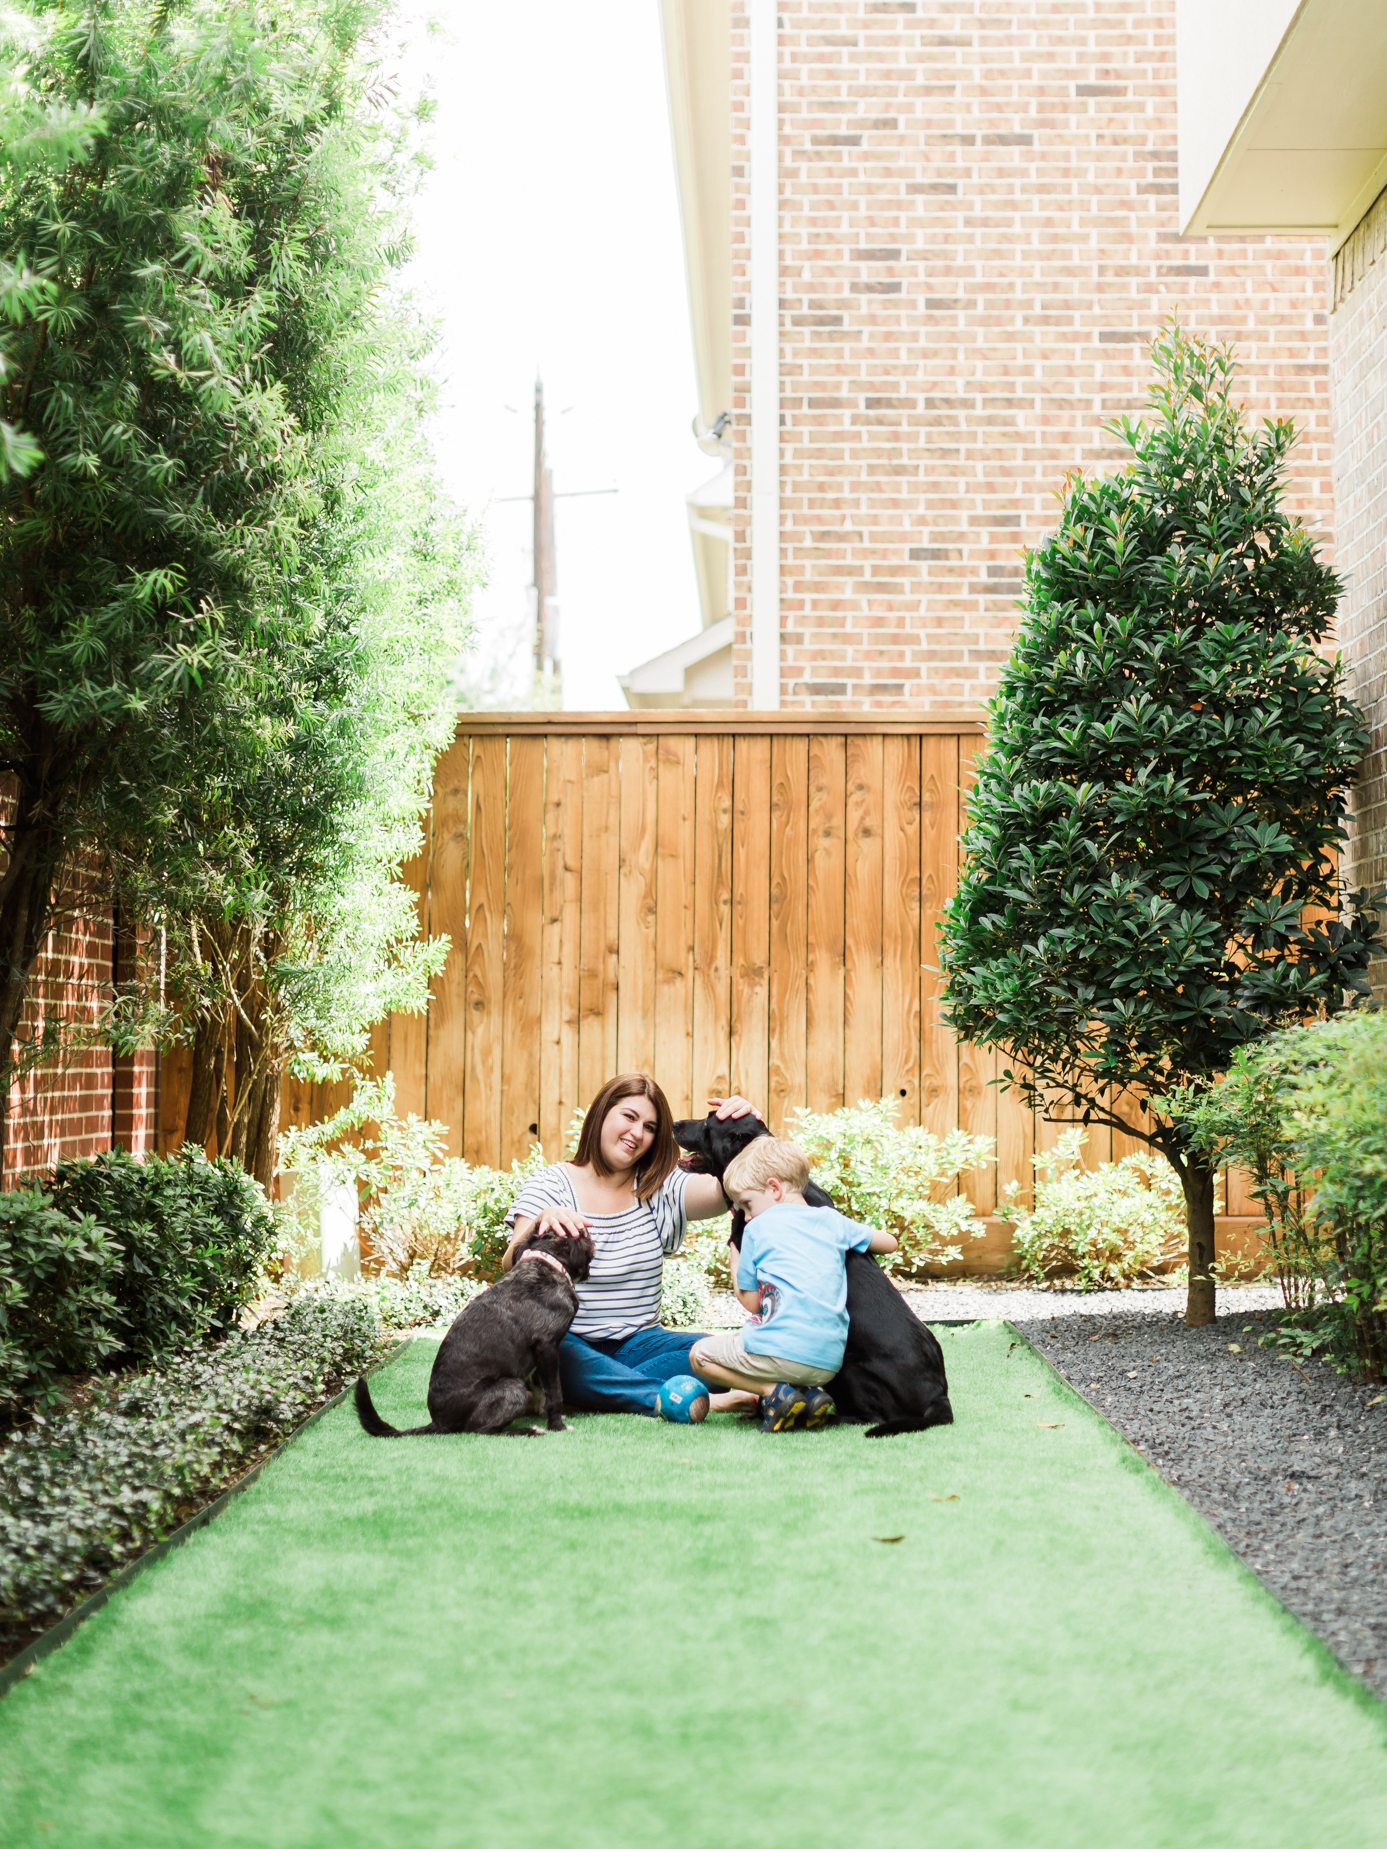 Artificial turf - safe for kids and dogs! The perfect solution for small backyards!